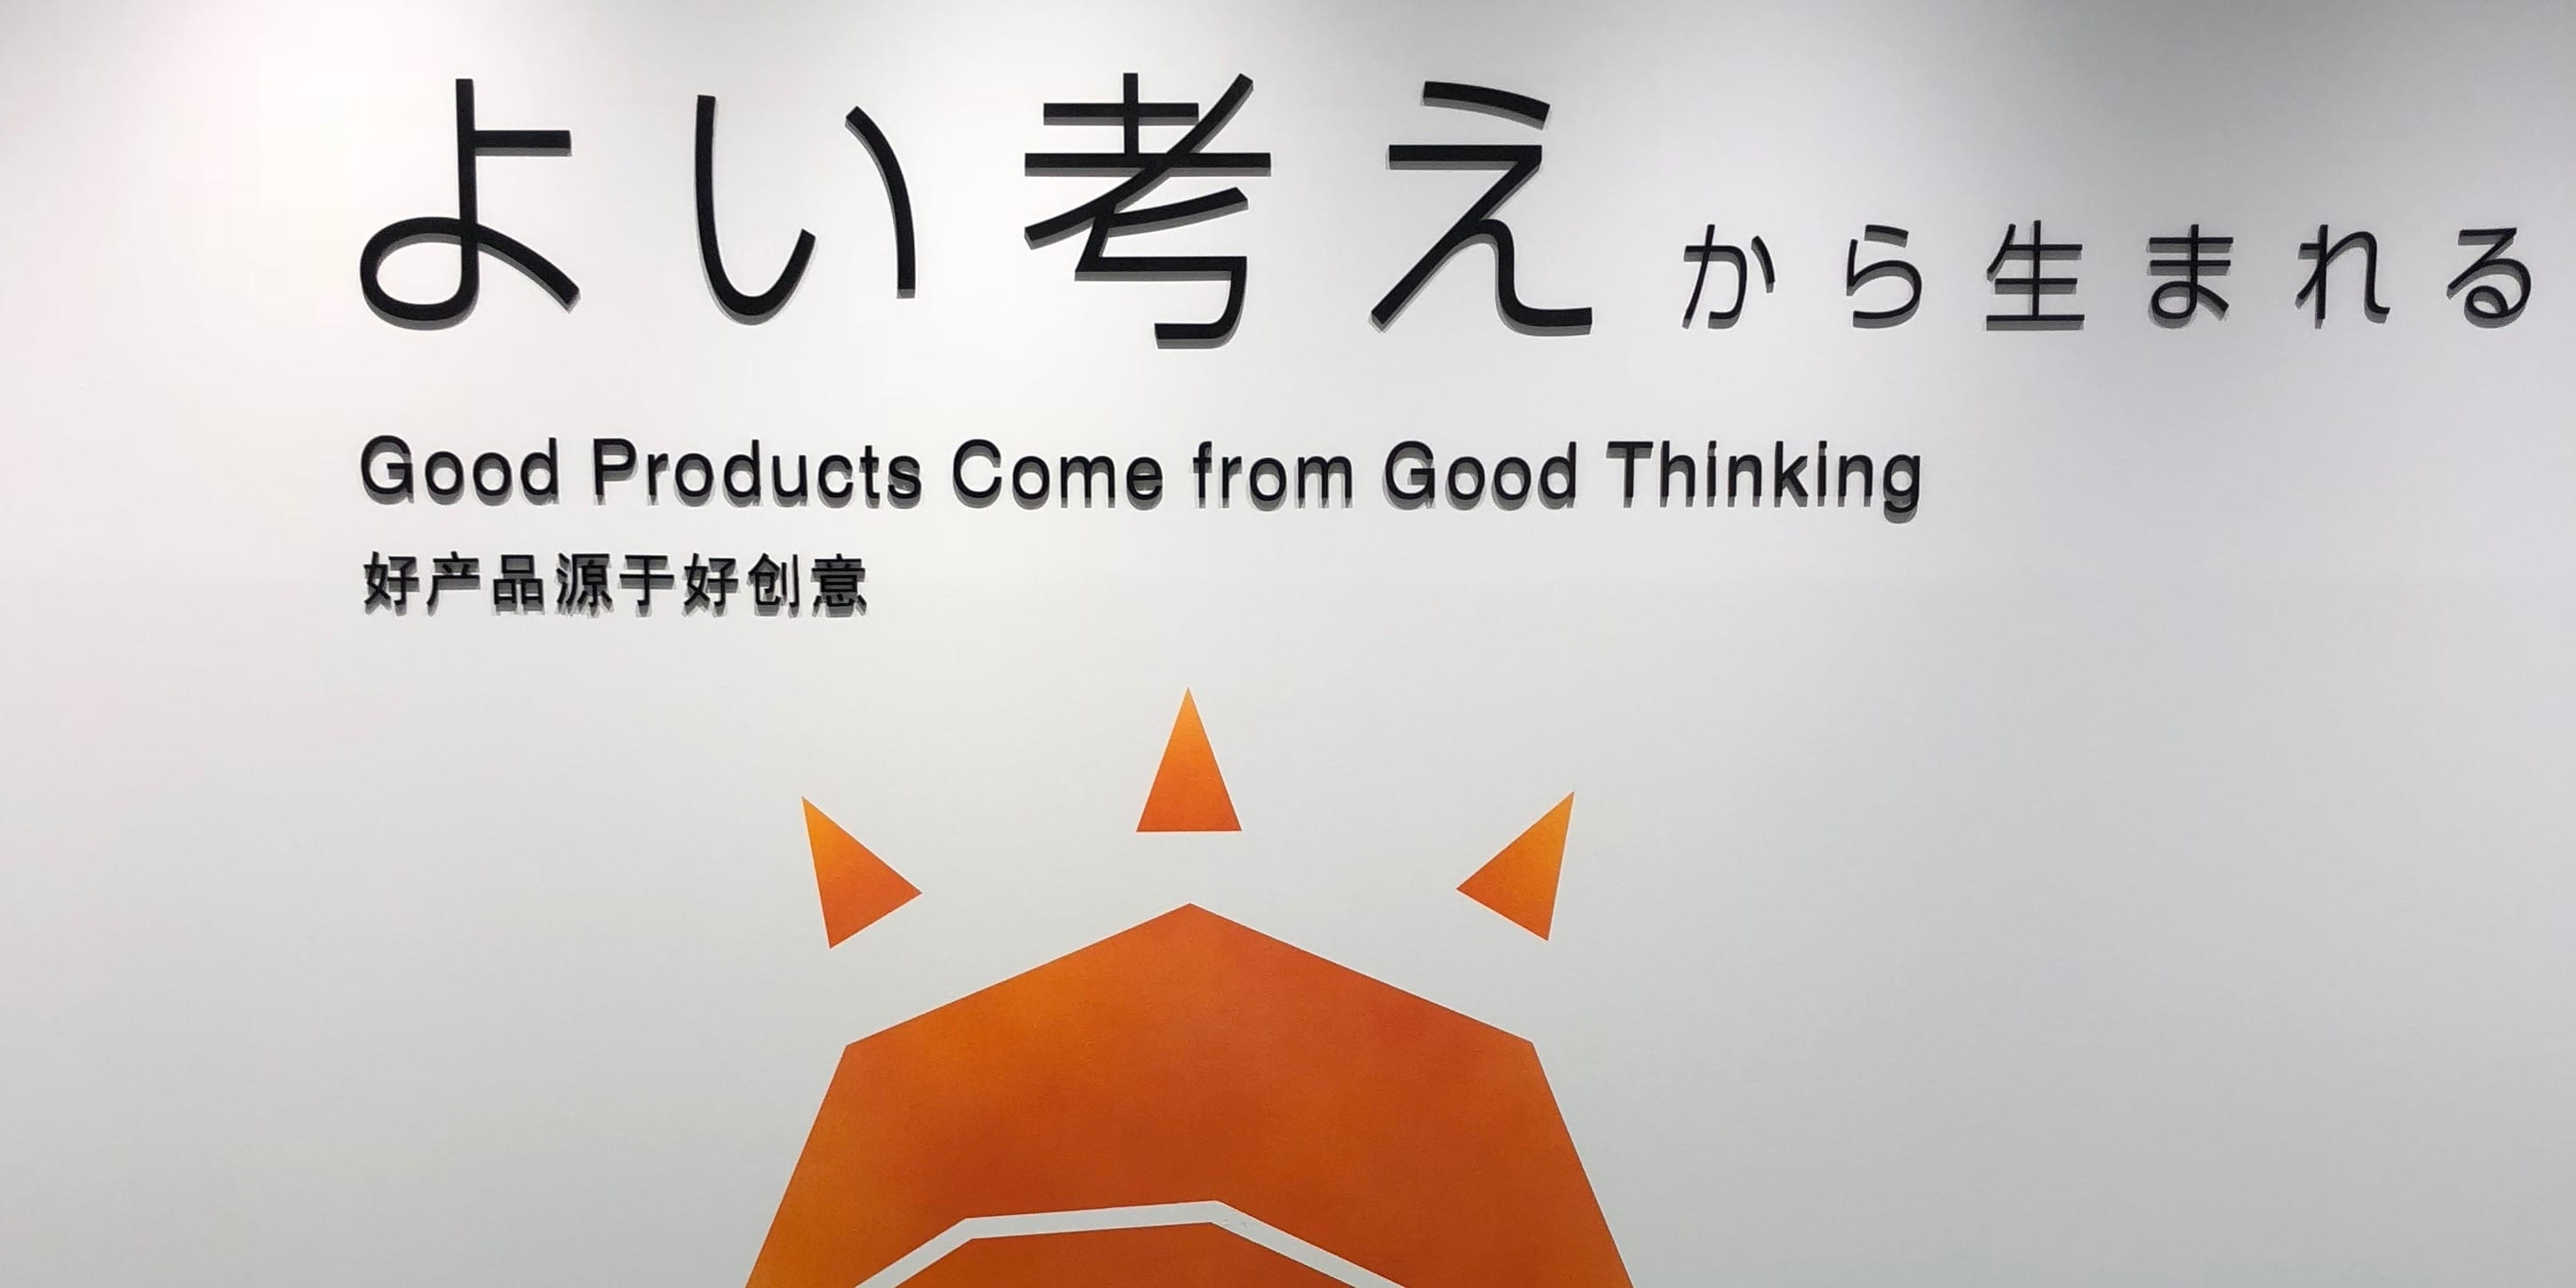 Good Thinking Good Products is one of the mottos of Toyota